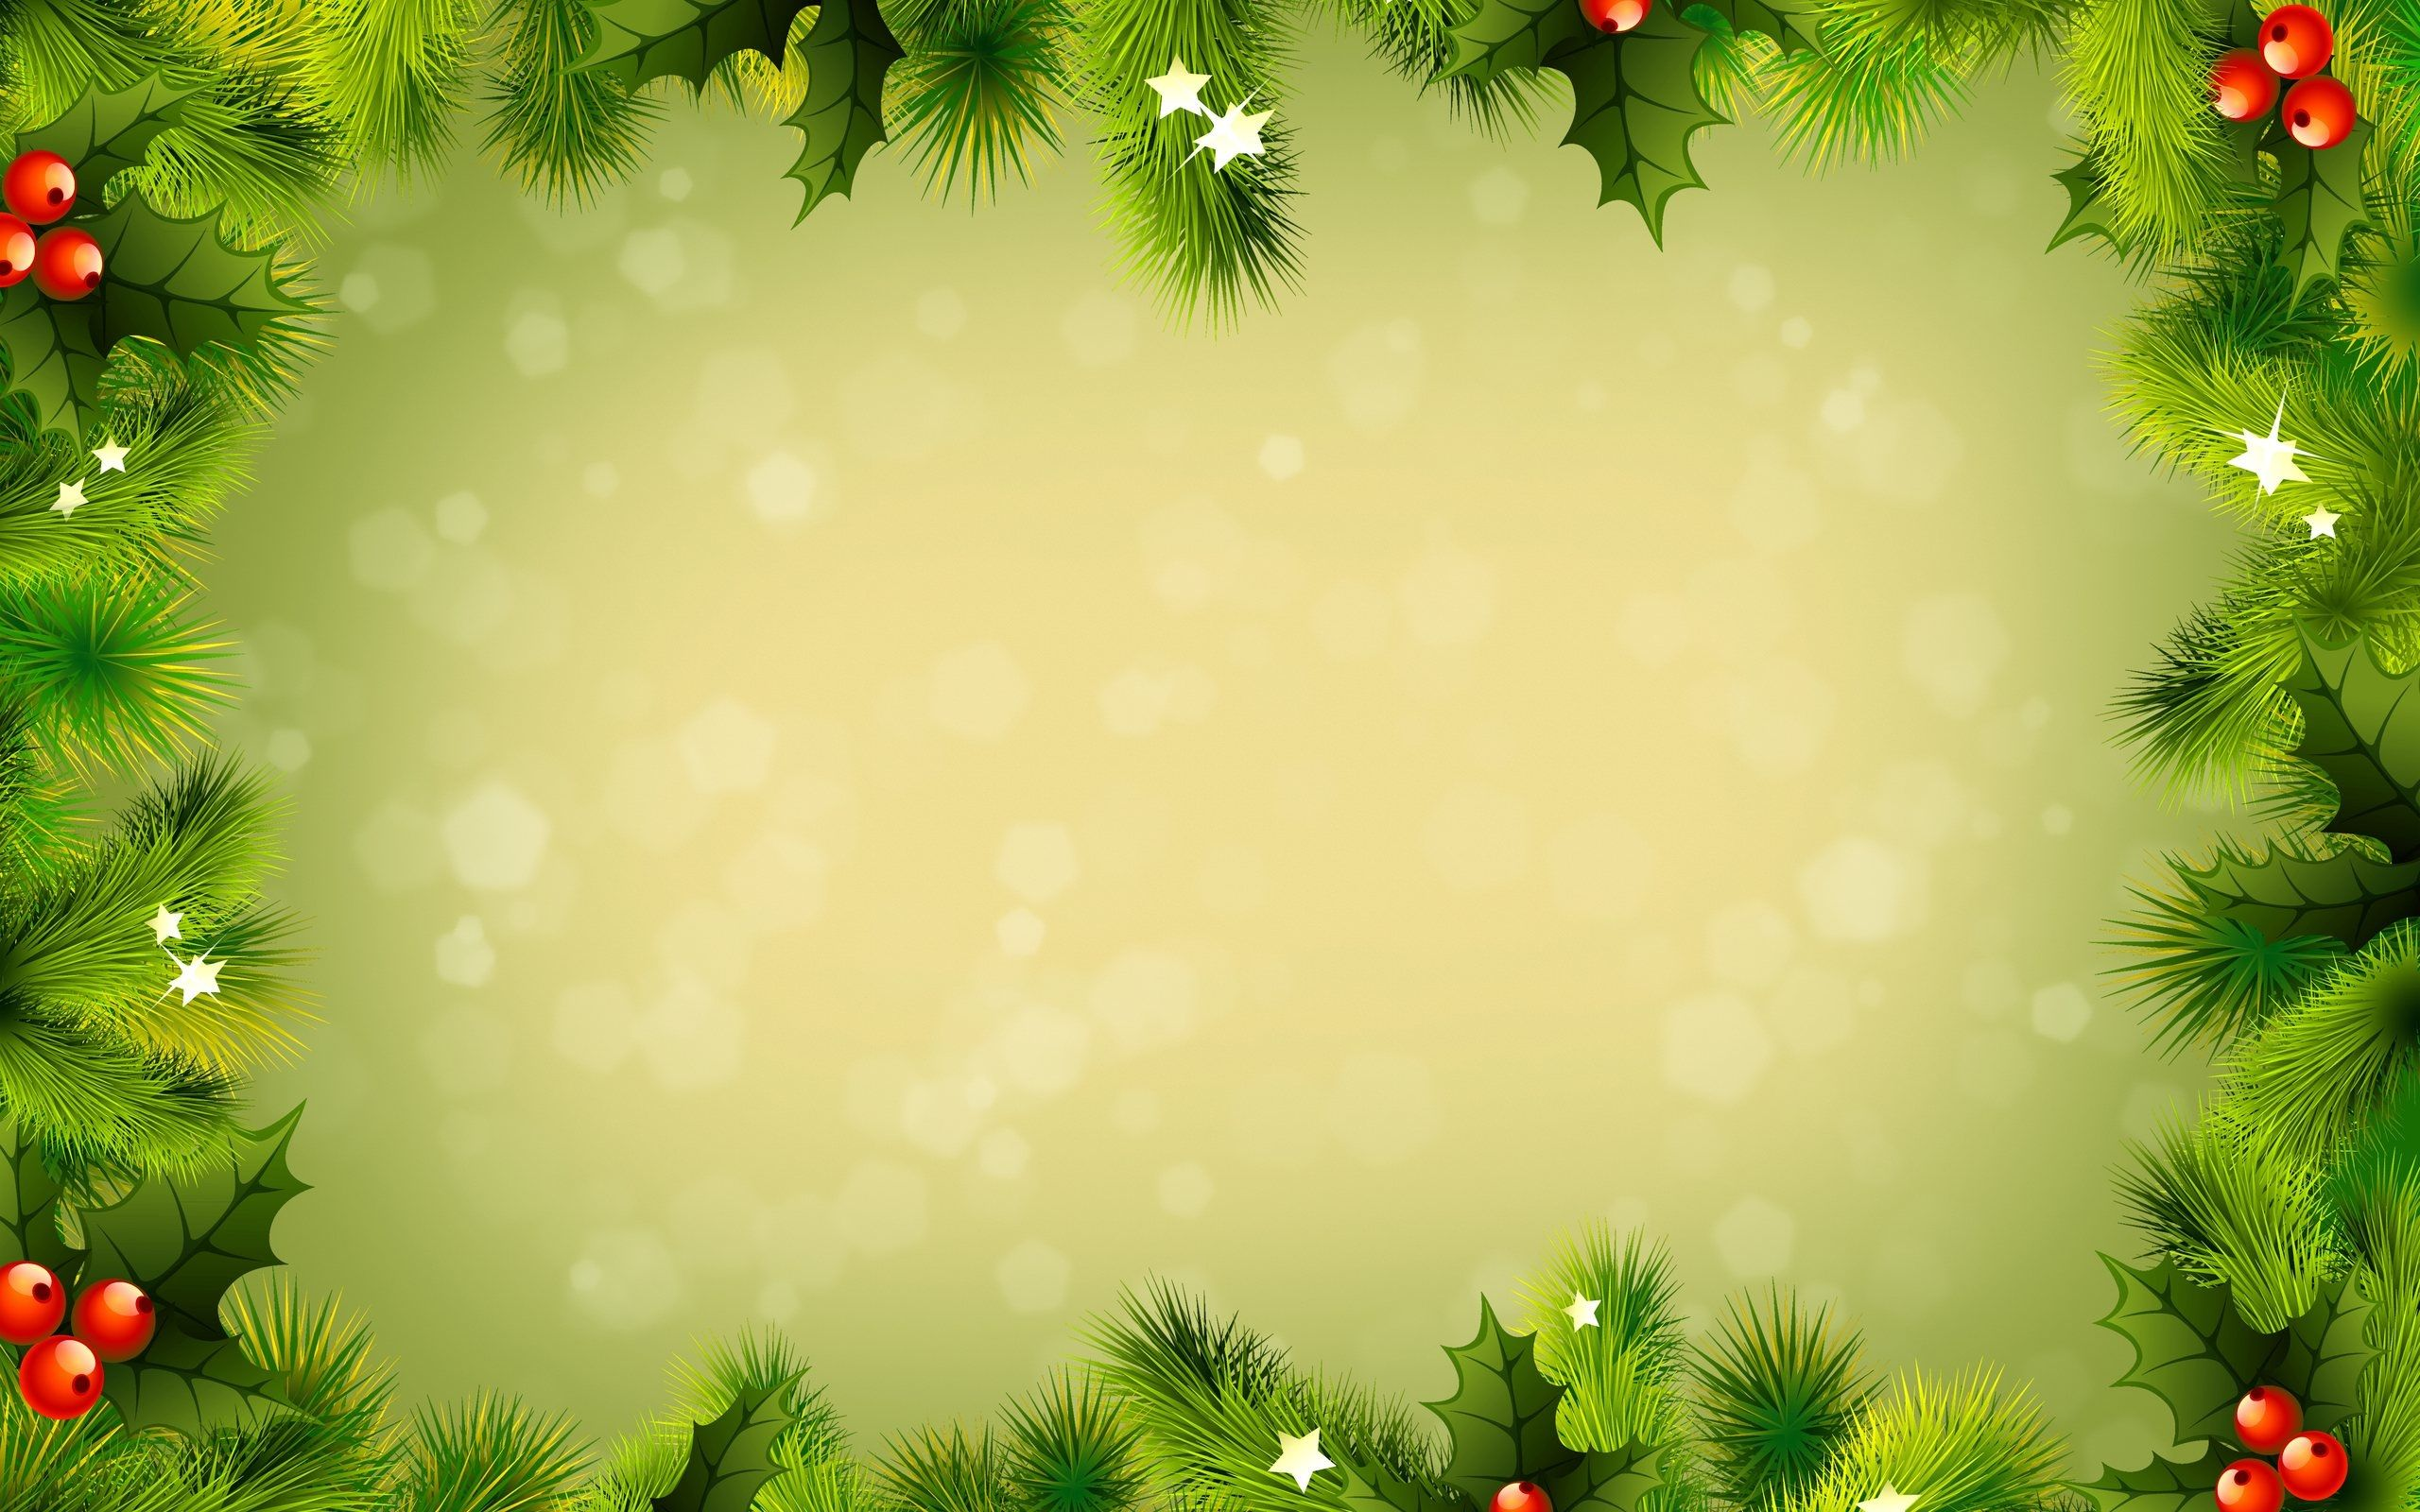 christmas background   Large Images graphic design 2560x1600